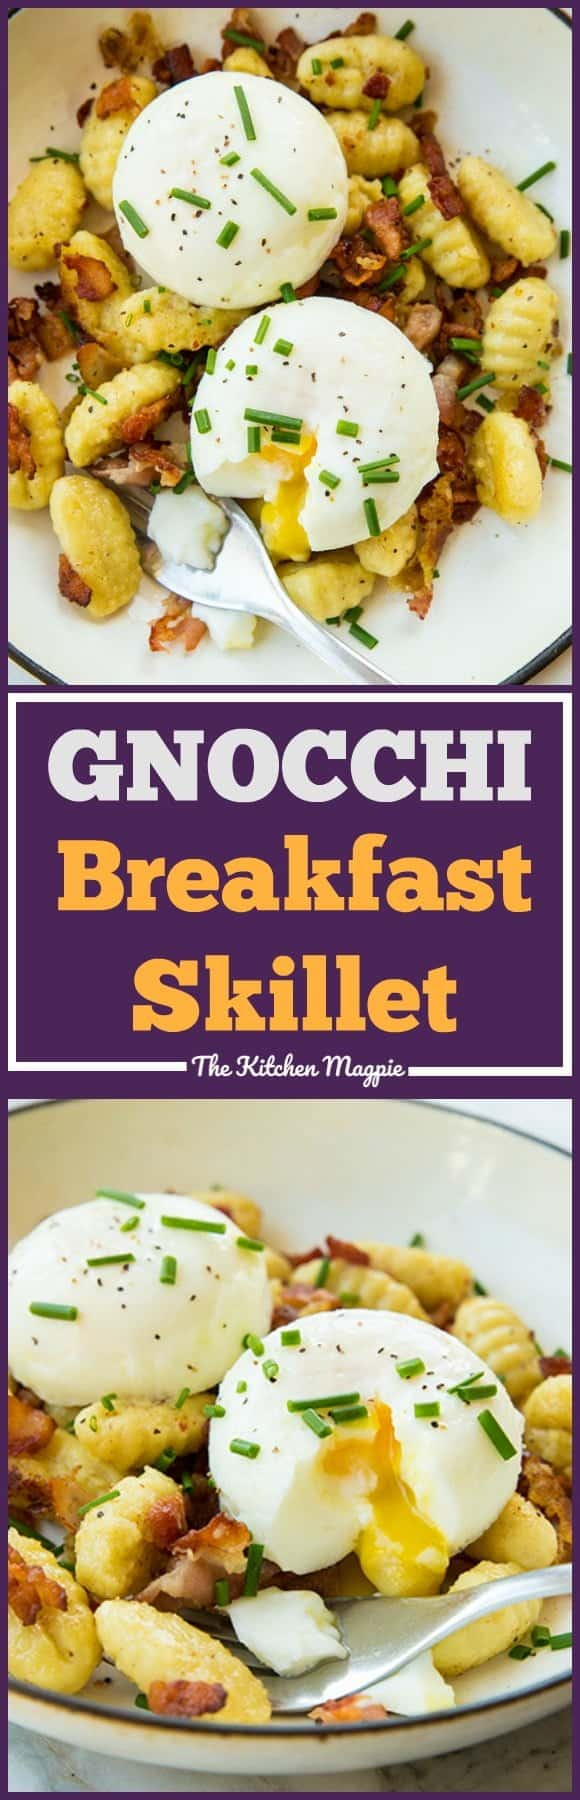 Gnocchi for breakfast? Why not? This Gnocchi Breakfast Skillet is perfect for leftover gnocchi - make sure to make extra gnocchi the night before so you can make this for breakfast the next day!! From @kitchenmagpie #recipe #breakfast #eggs #bacon